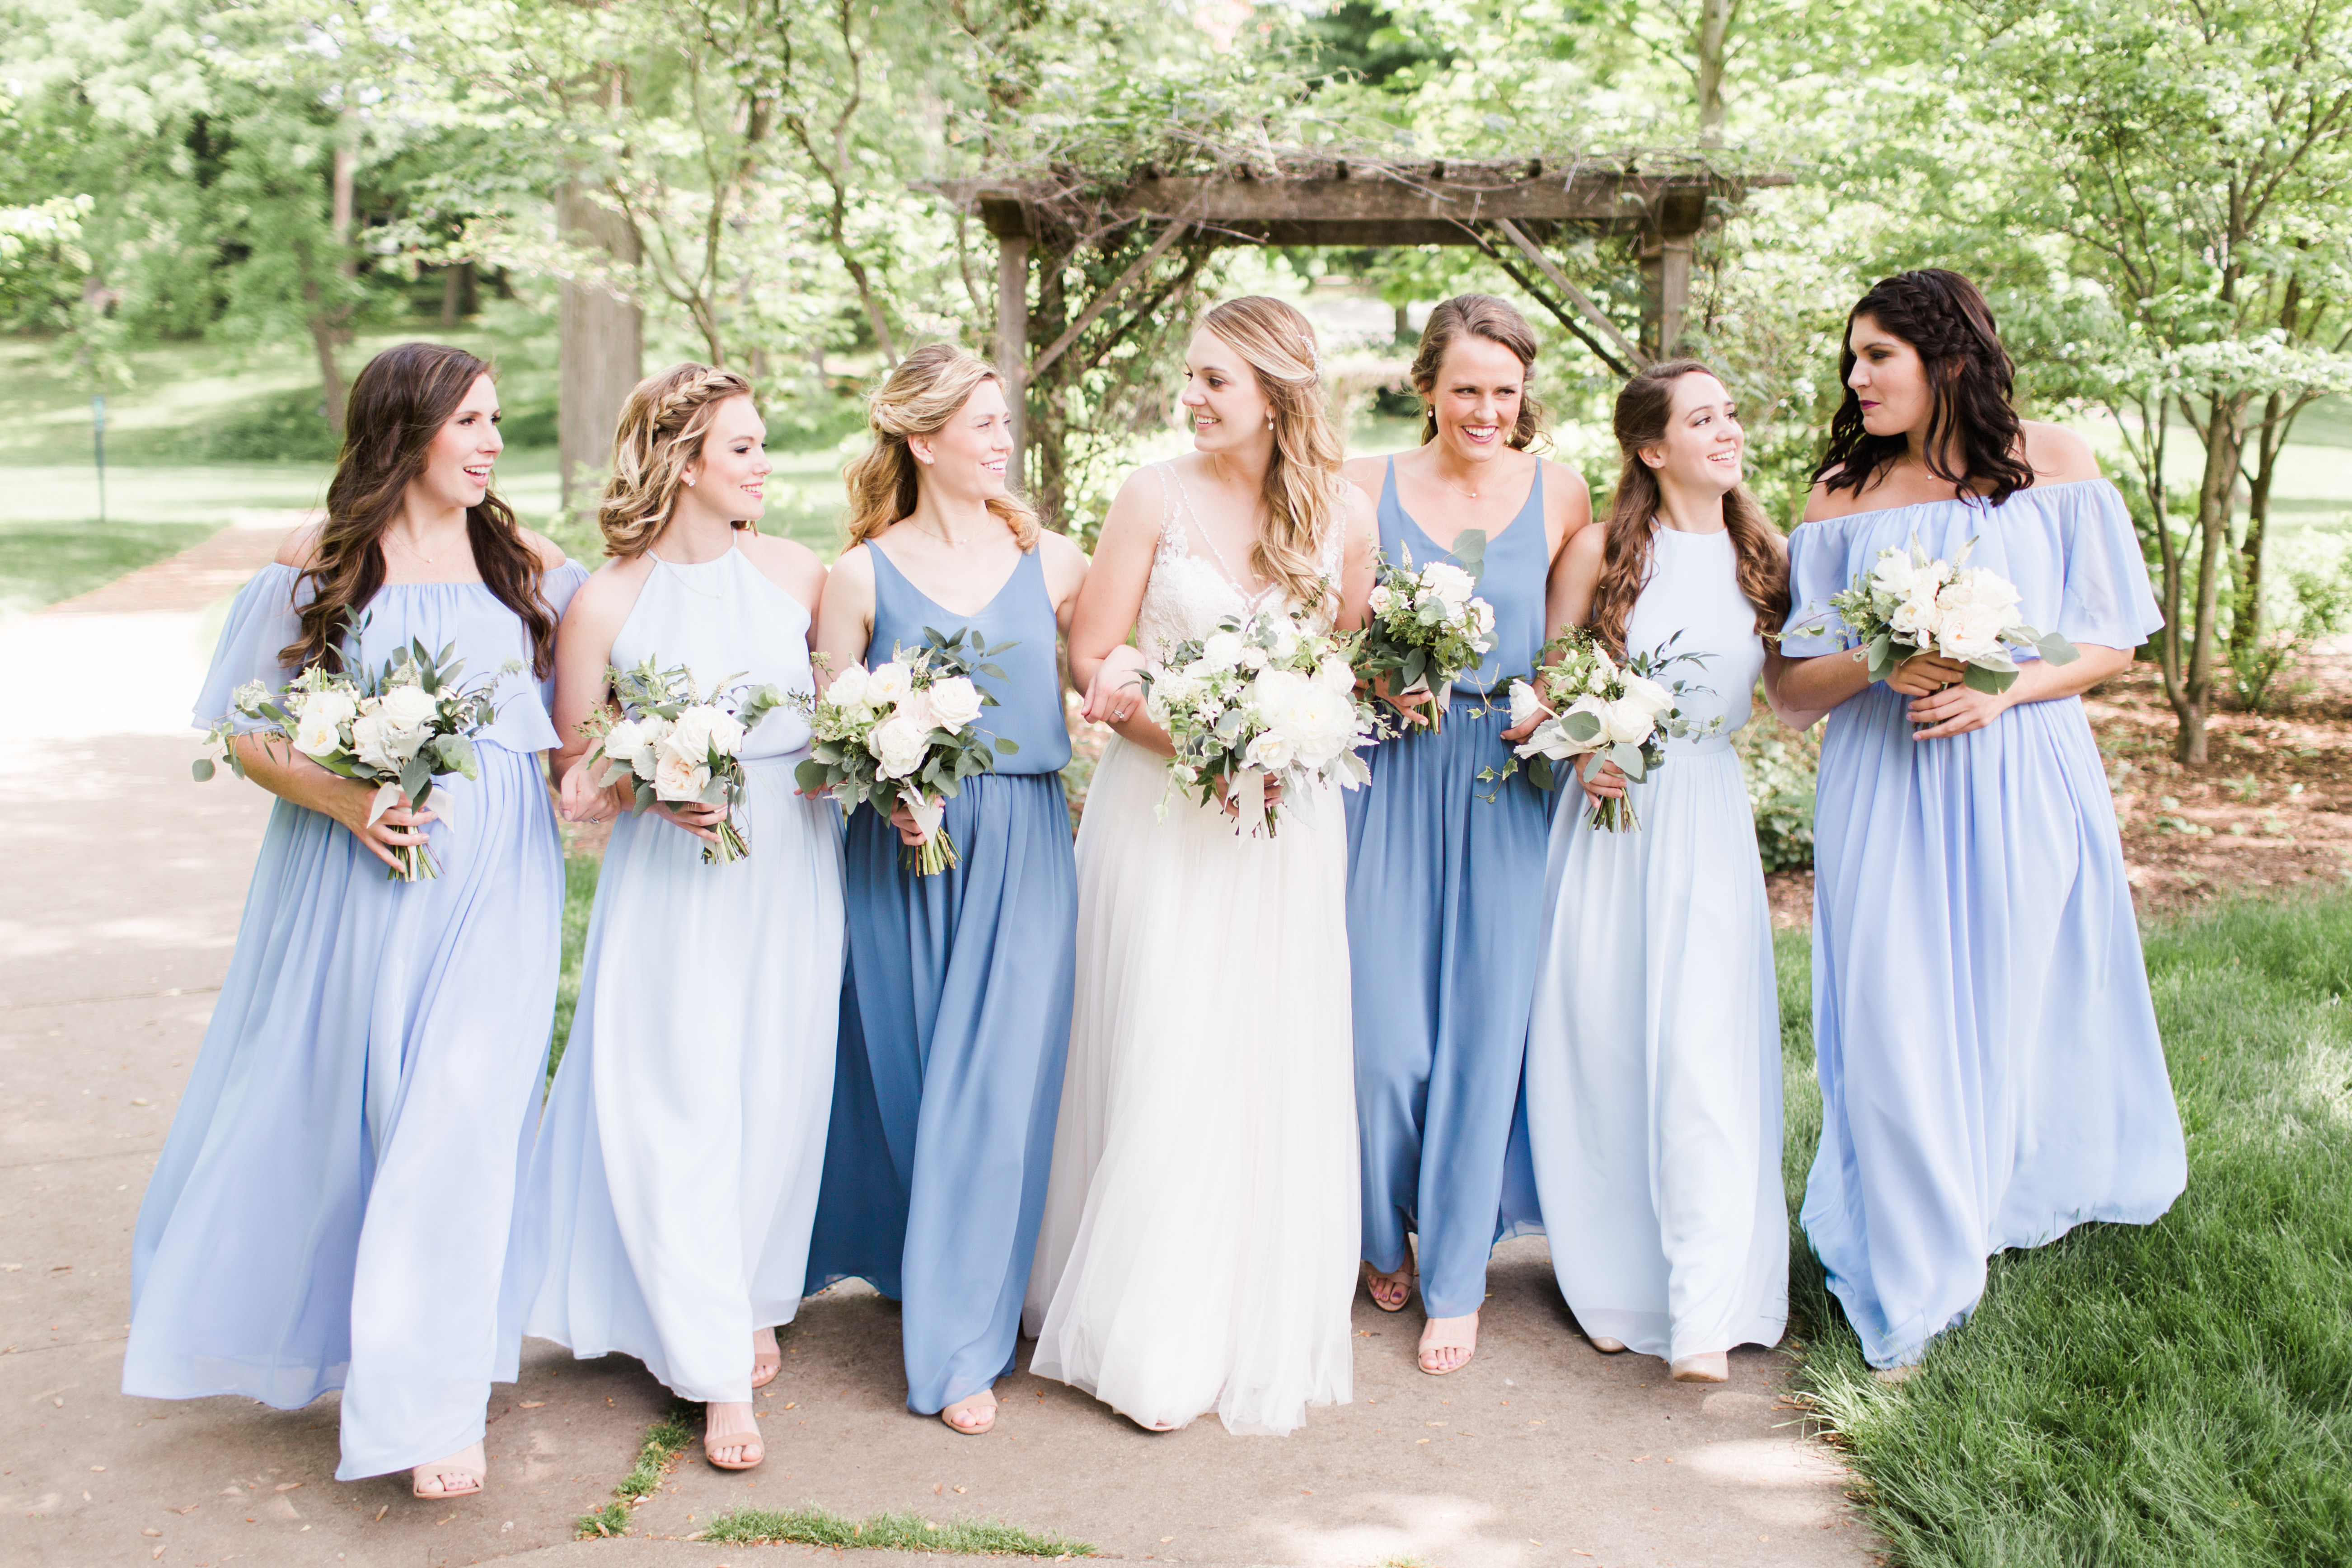 cc56c9aa02593 When Your Bridesmaids Are Your